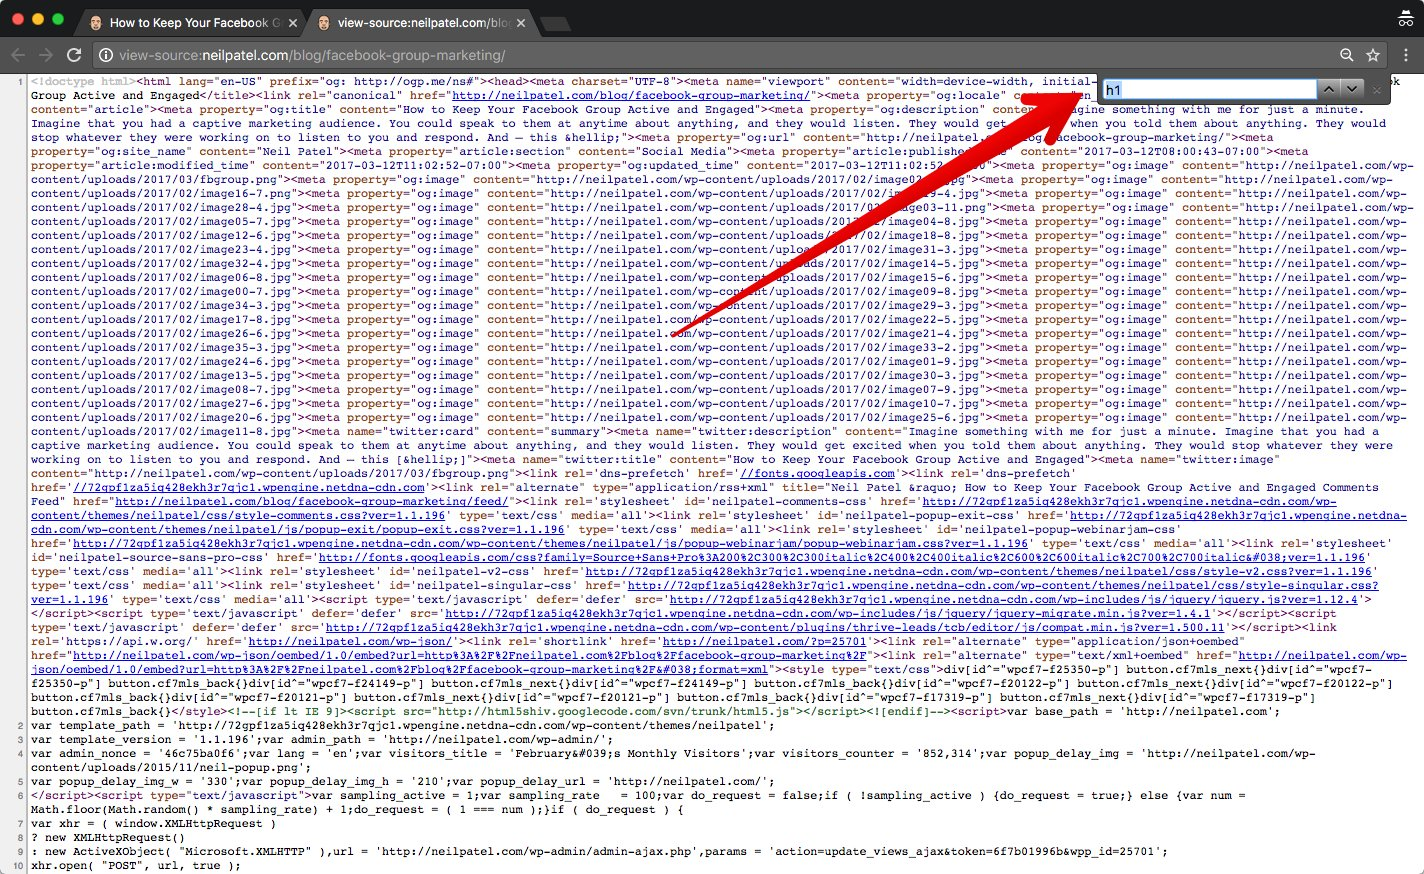 H1 tag - entering it into search box in source code